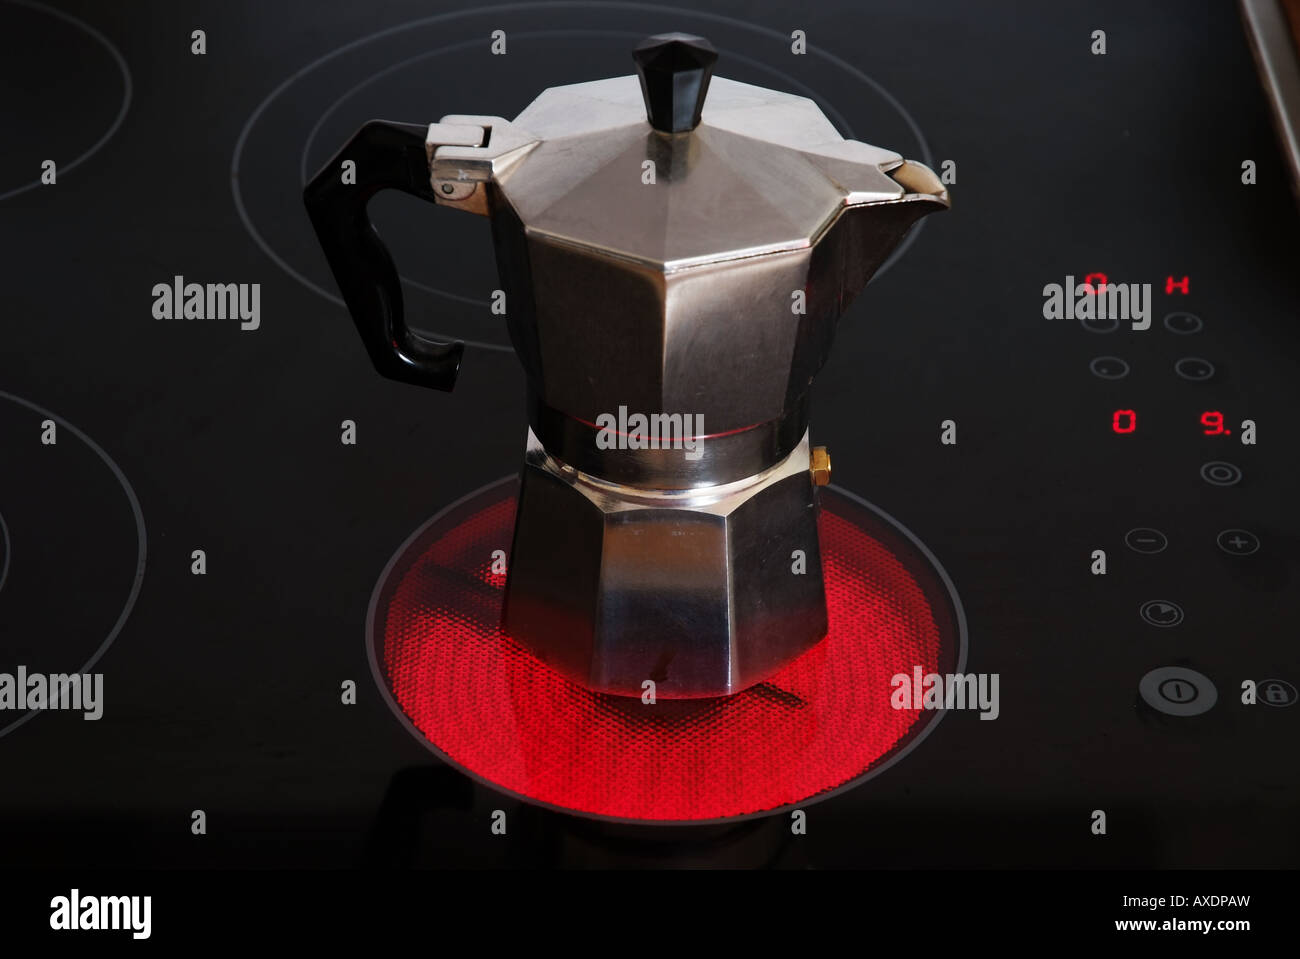 Wie Kocht Kaffee cooking coffee kaffee kochen stock photo 16813344 alamy